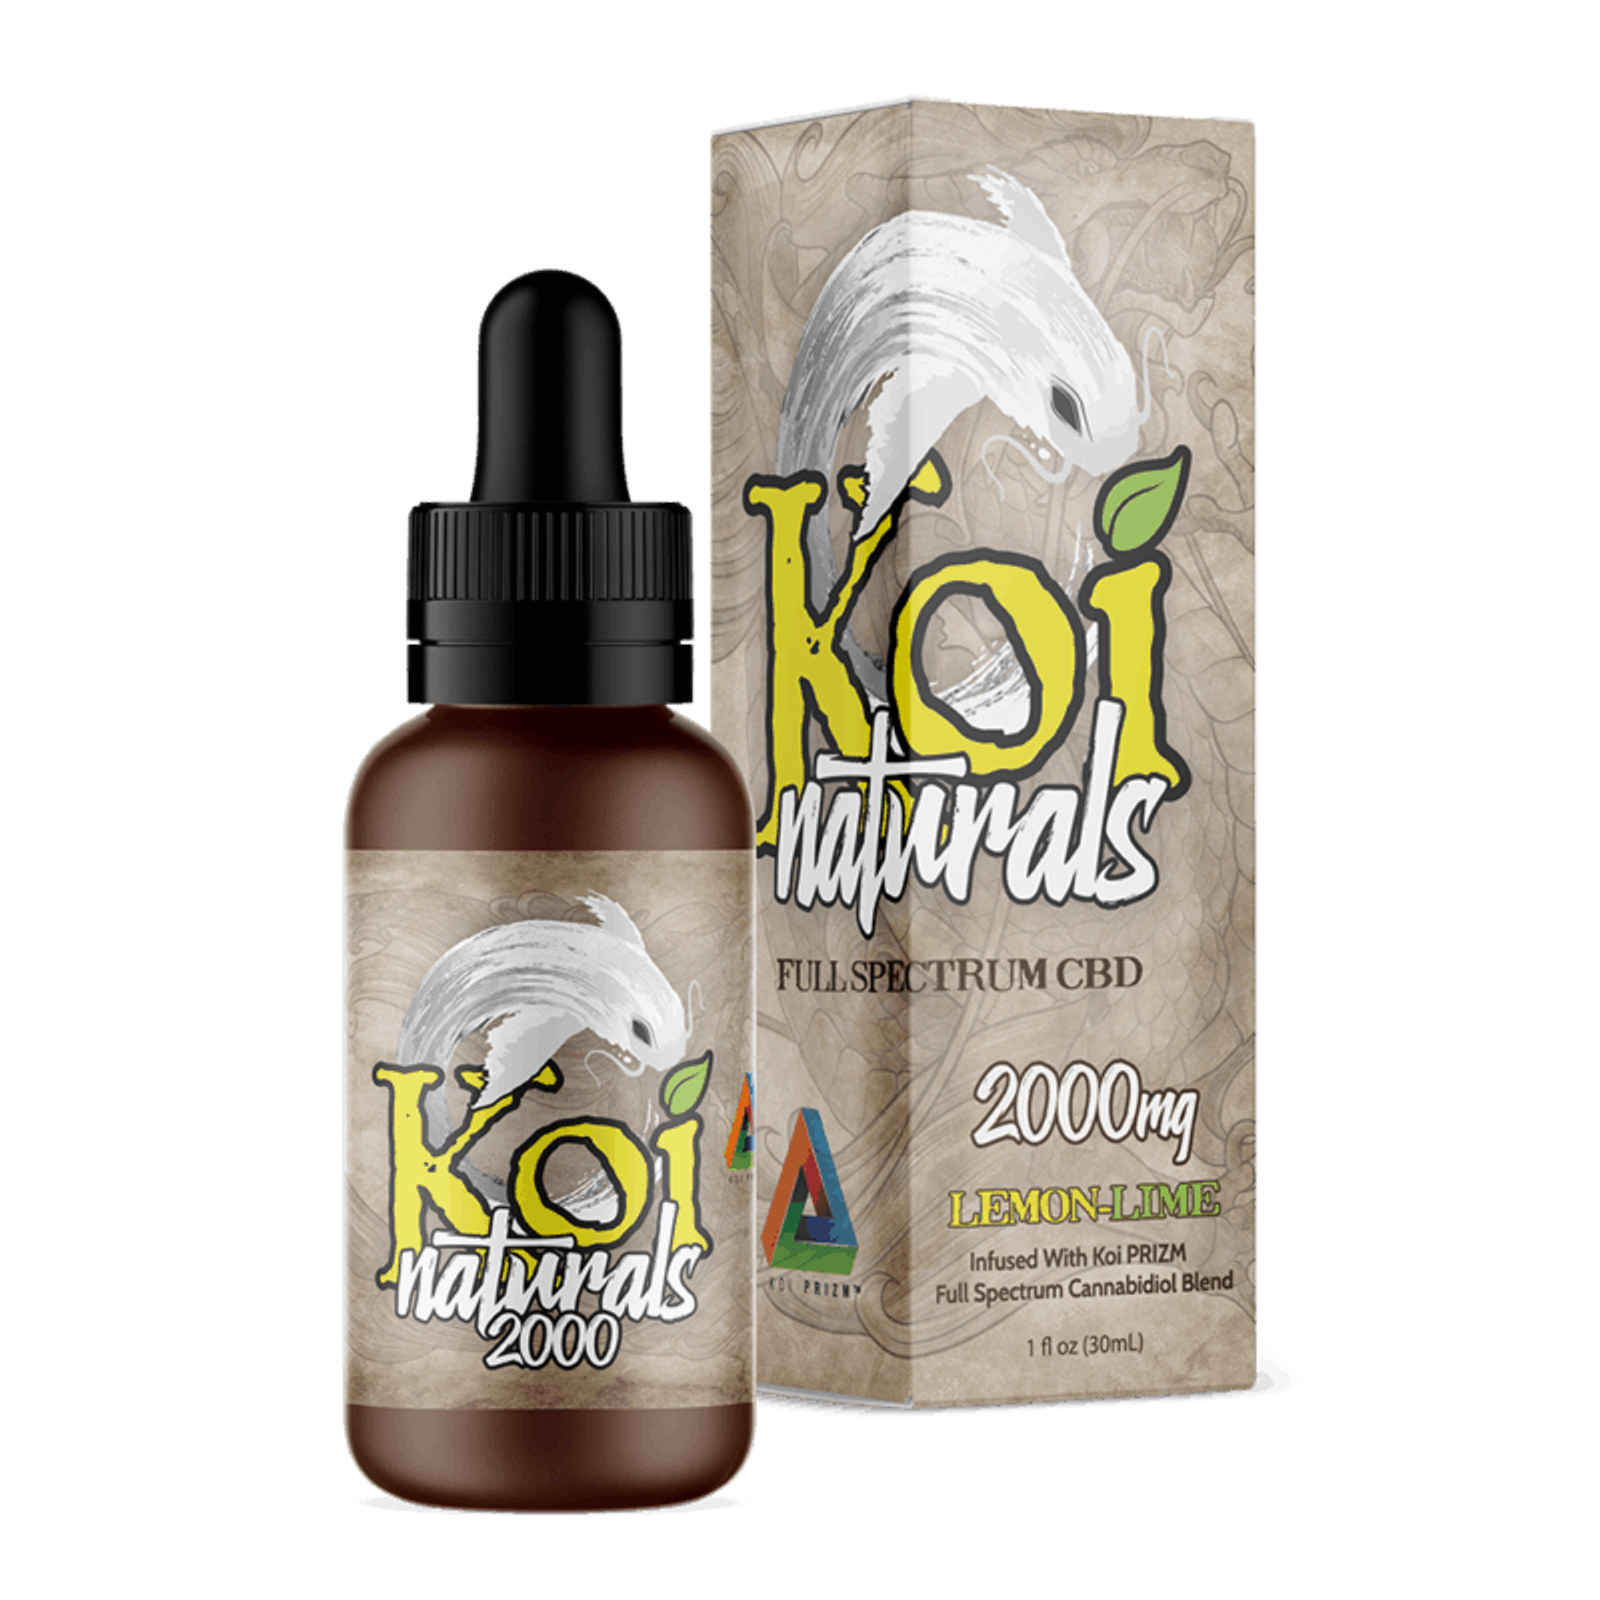 Lemon Lime by Koi Naturals